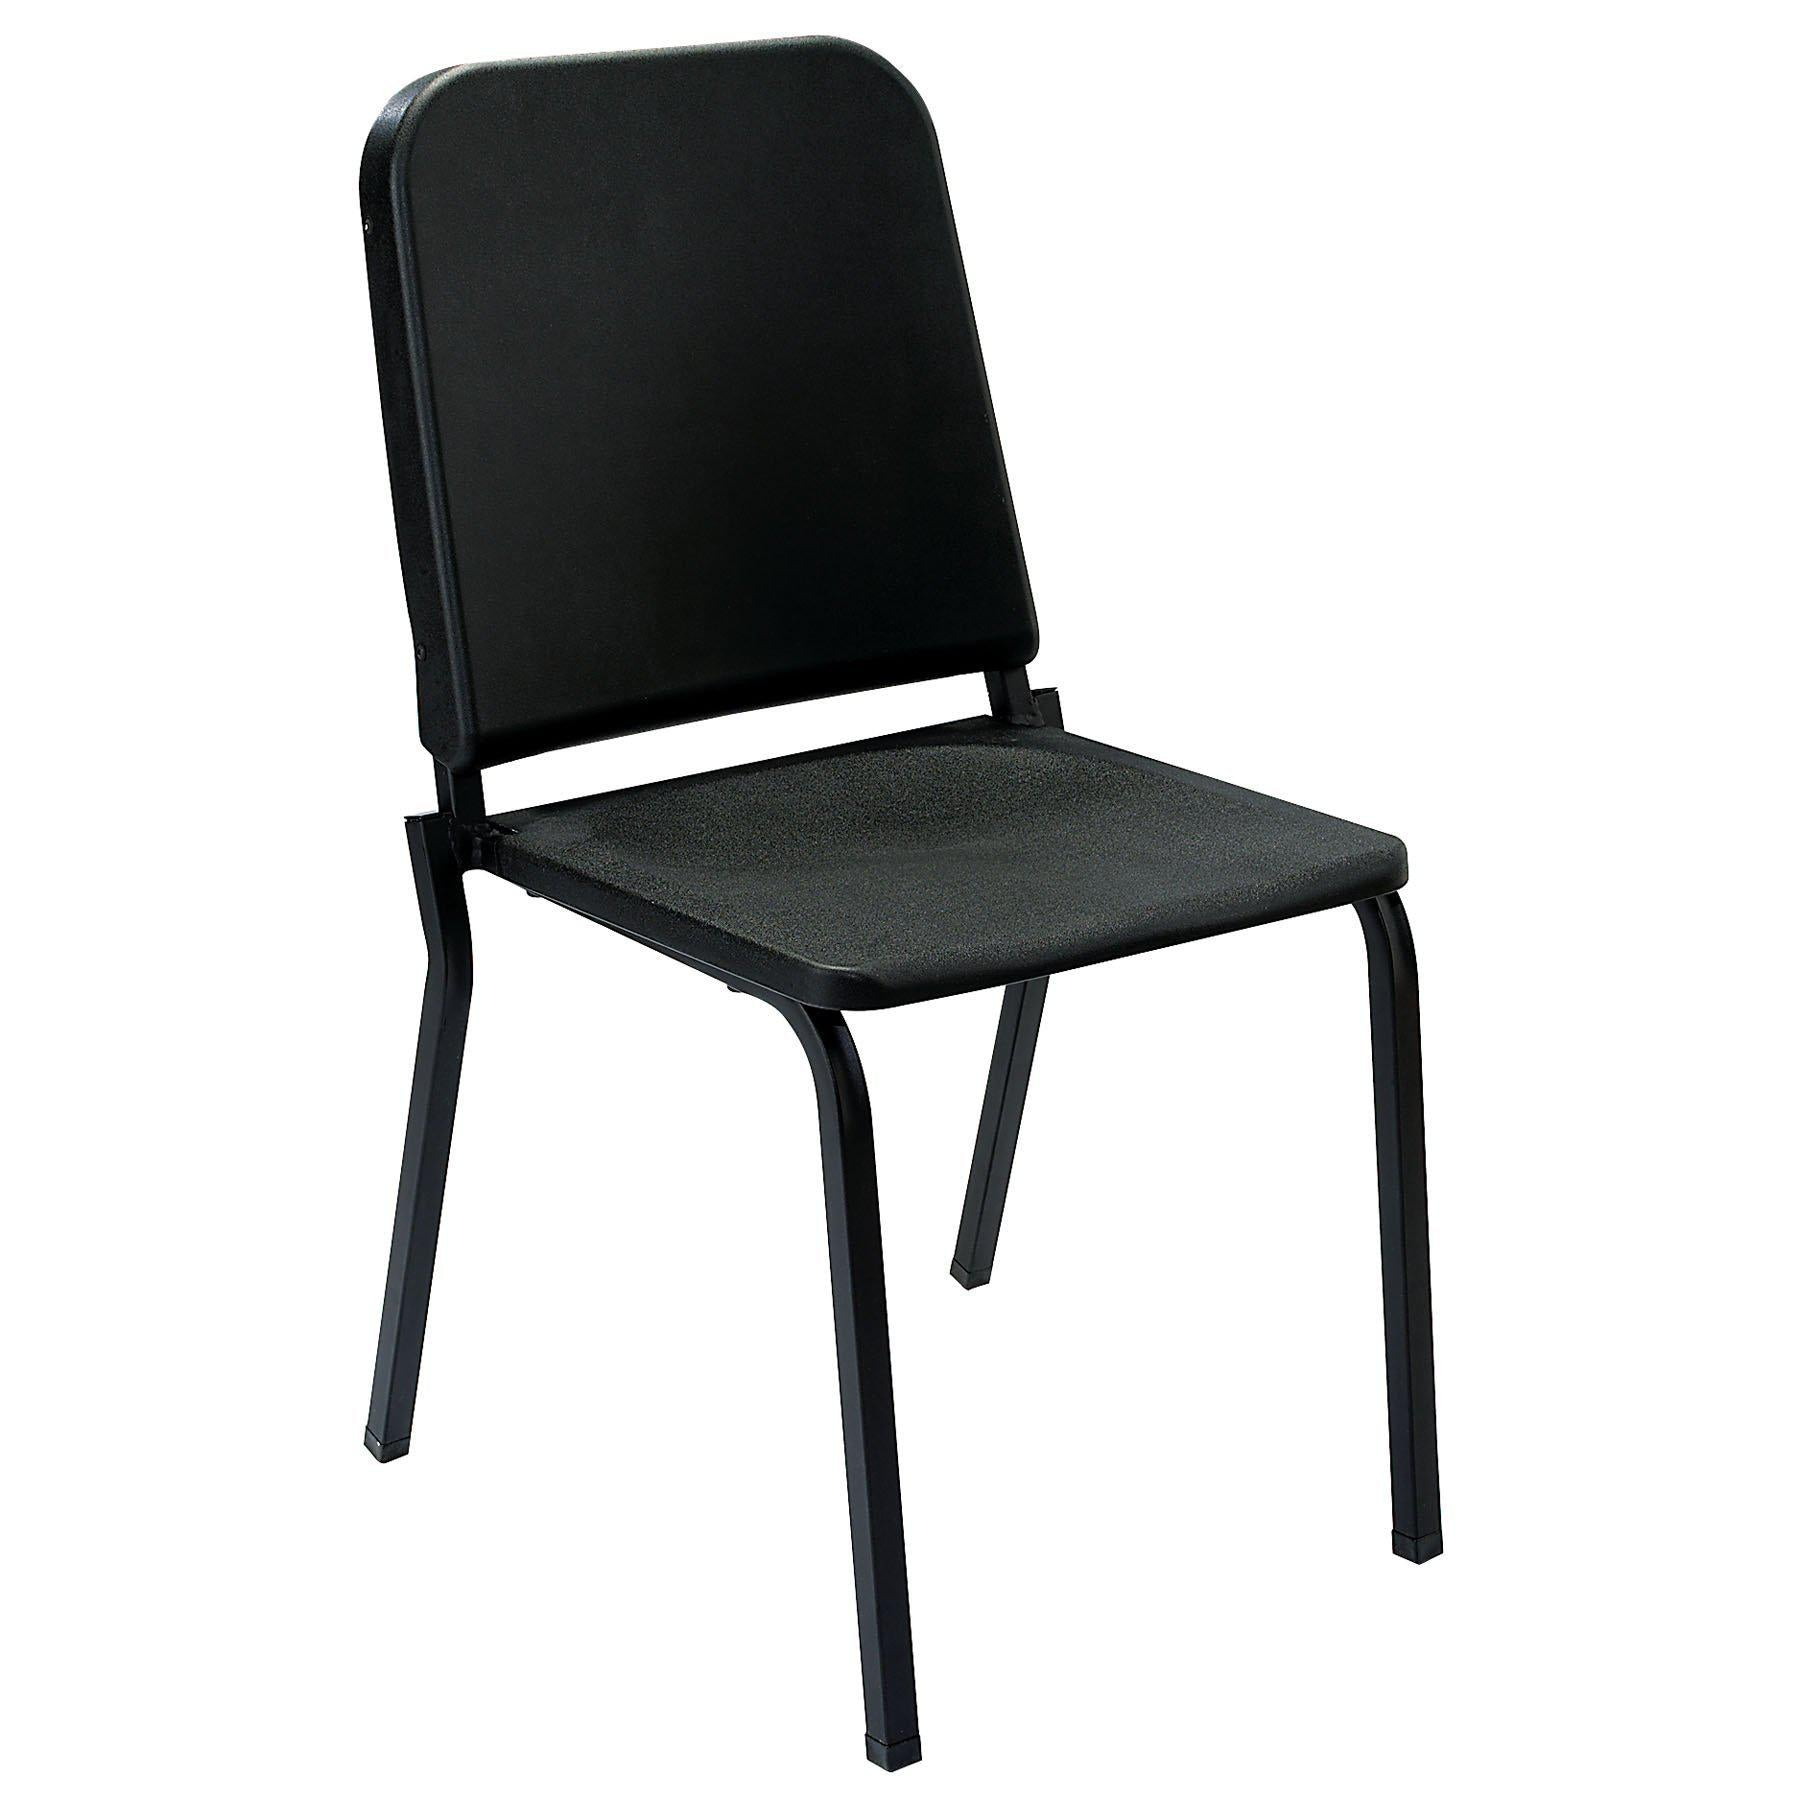 Melody Music Chair, Black-Chairs-